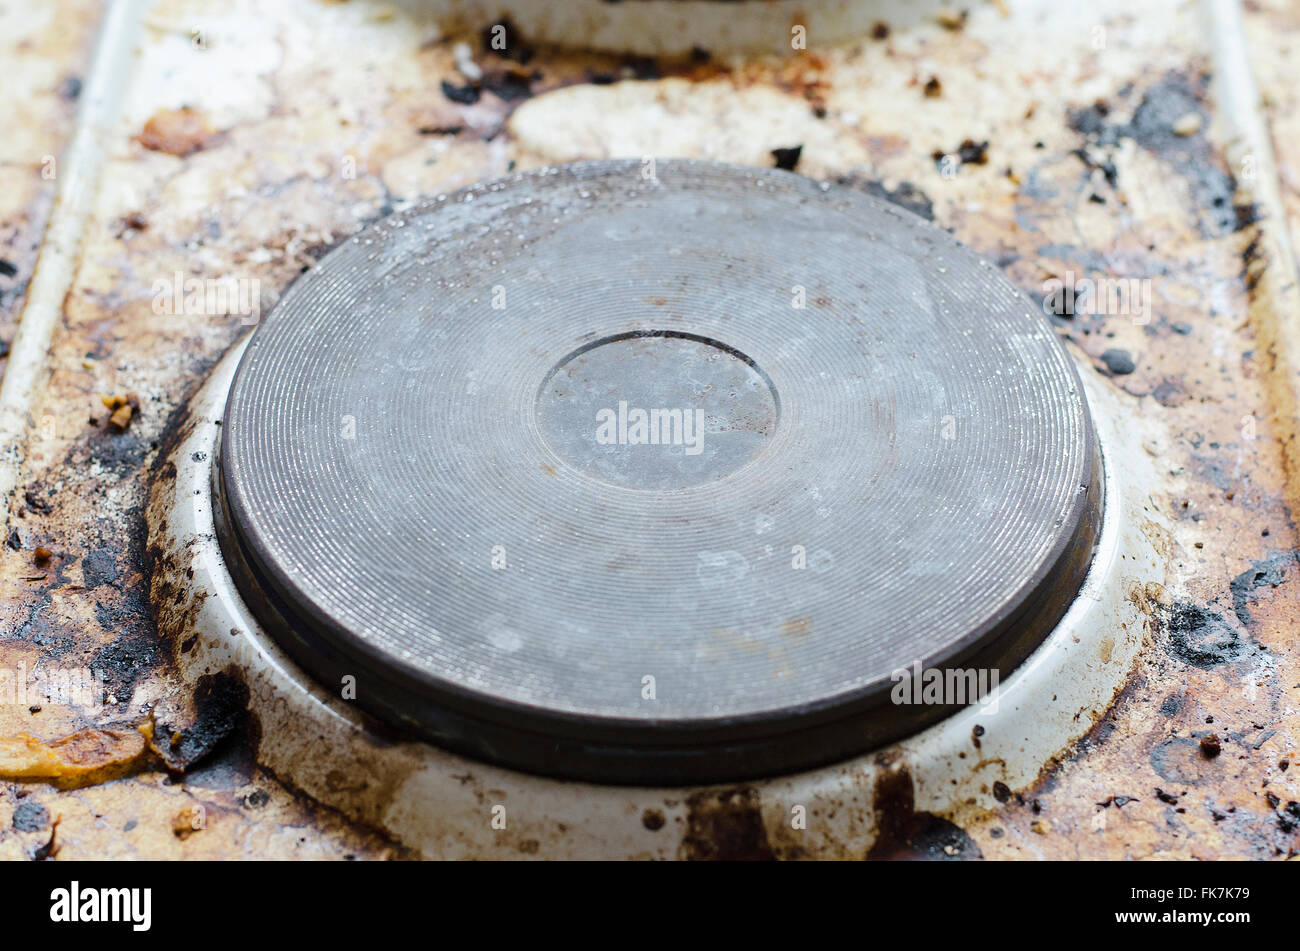 Very dirty hot plate in the kitchen Stock Photo: 97899069 - Alamy